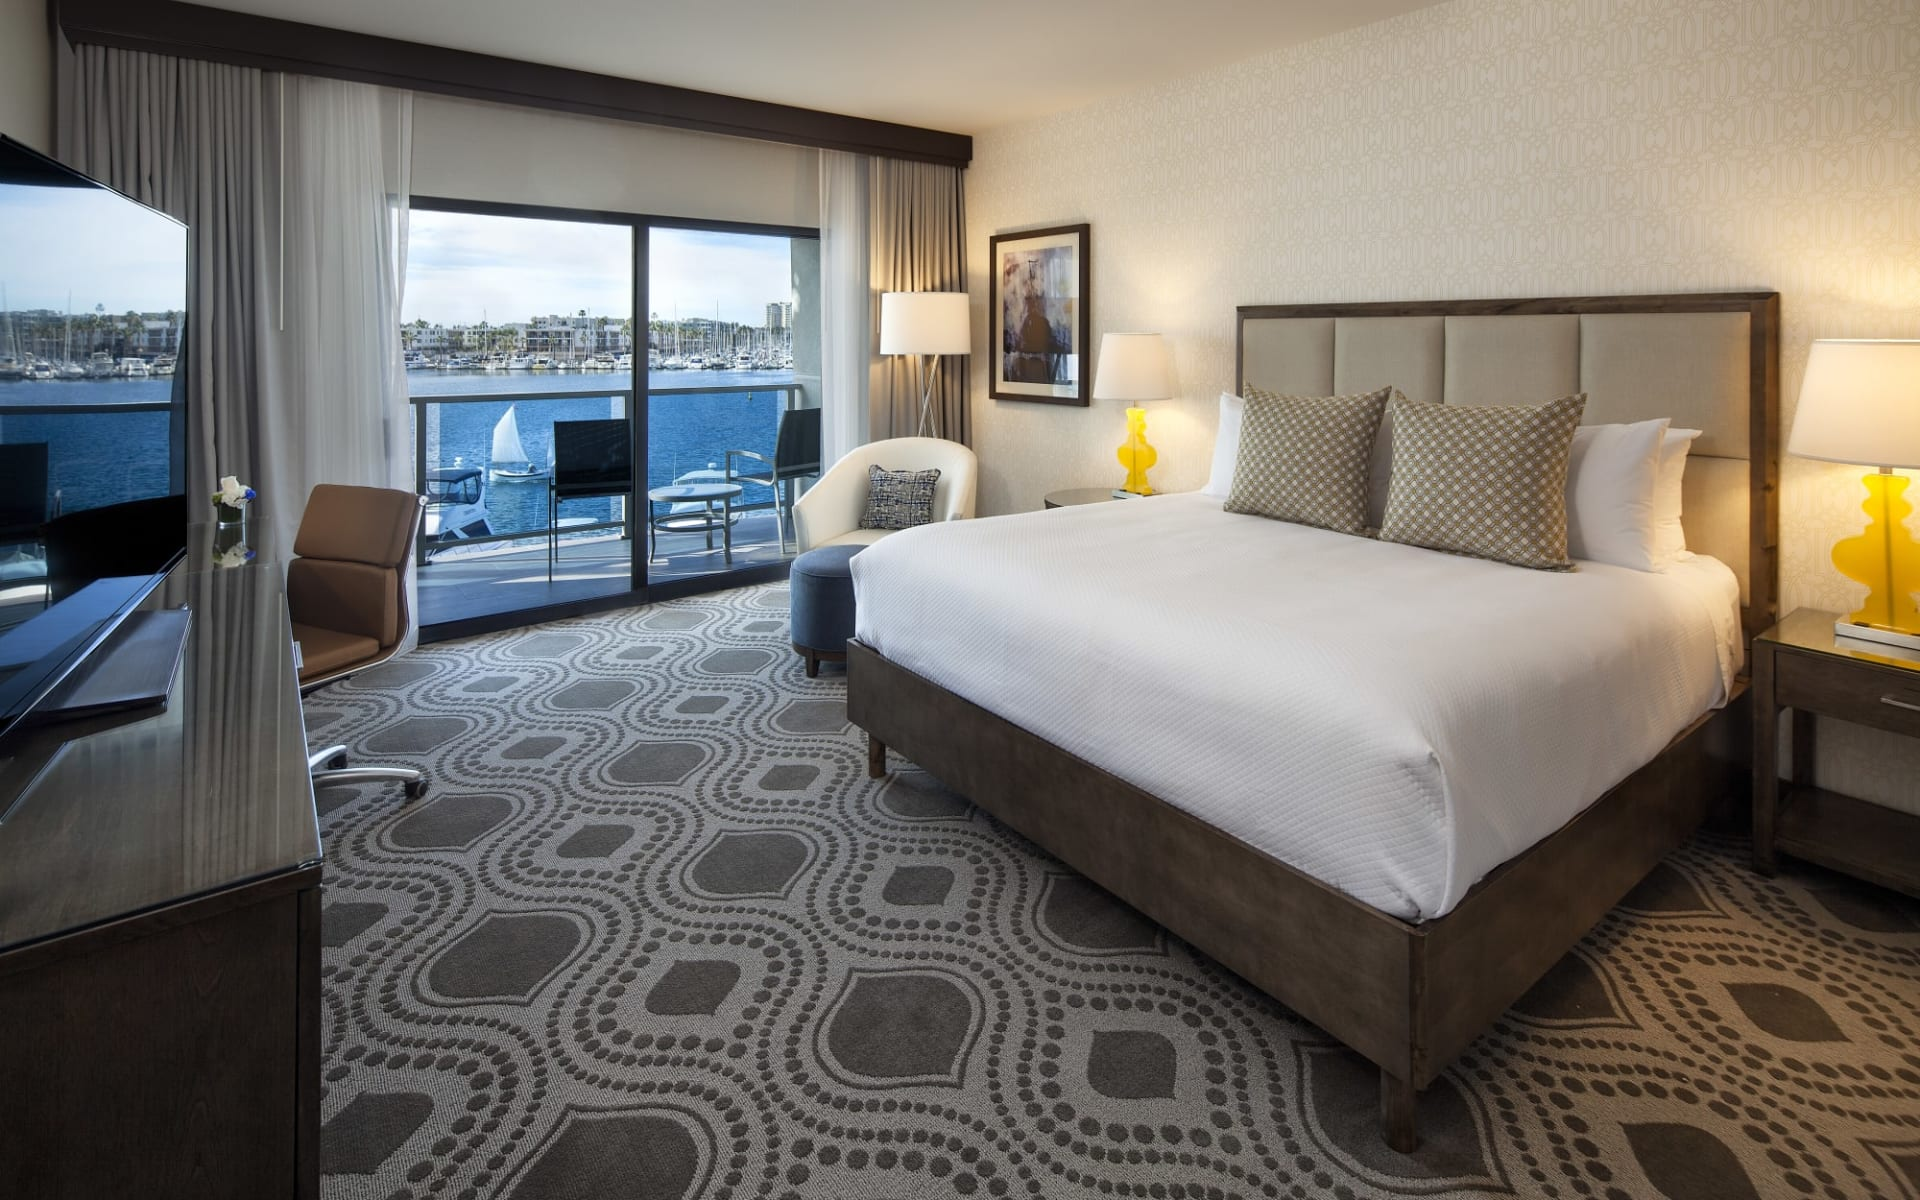 Marina del Rey Hotel:  Marina del Rey Hotel - Marina View